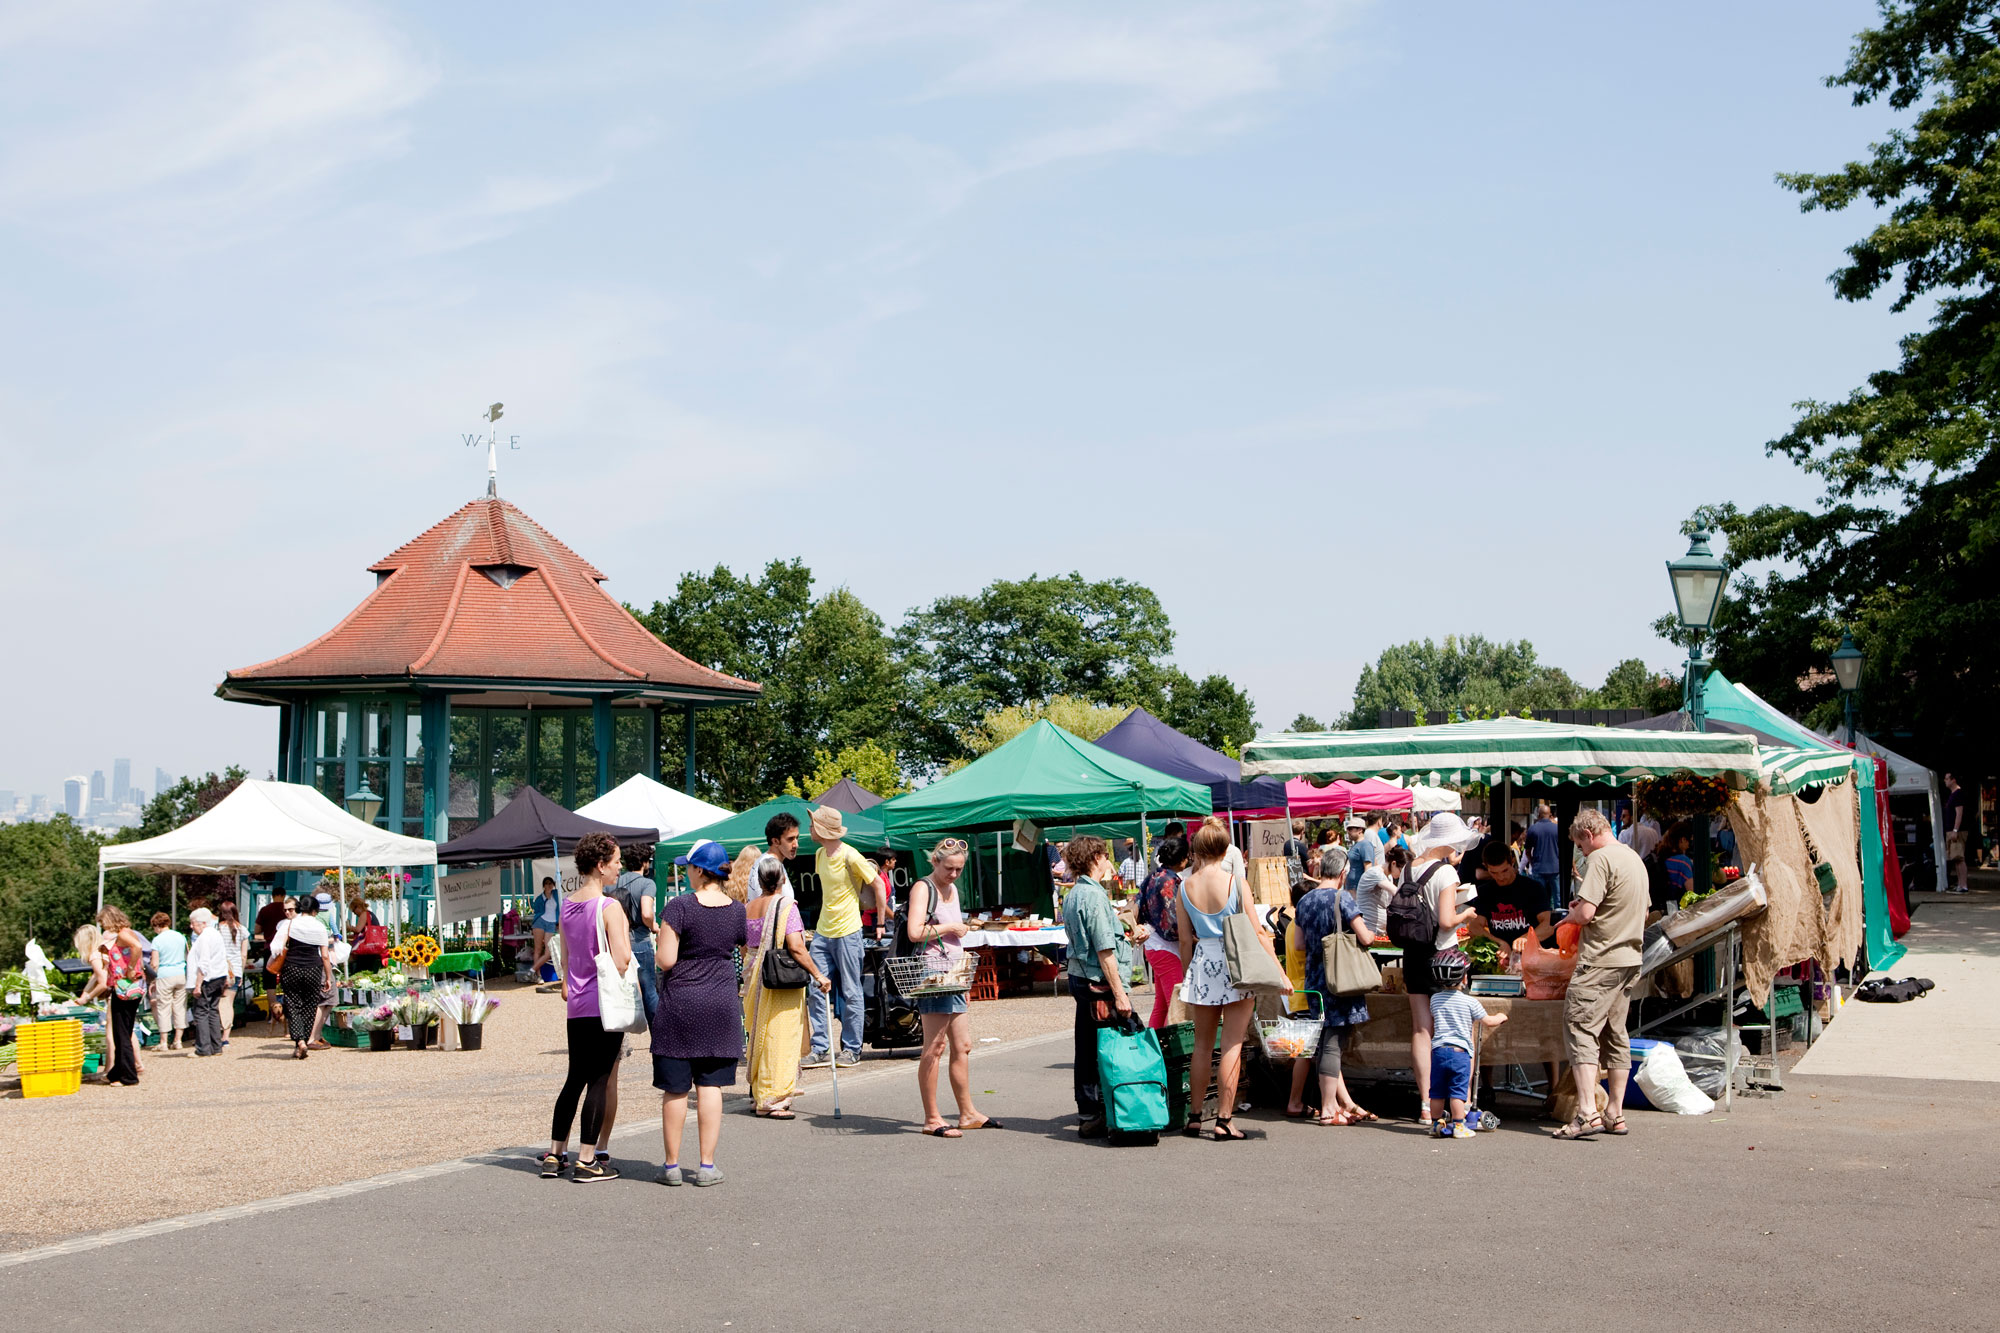 A group of stalls in a terrace outdoors next to a bandstand. There are people queuing at the stalls and the day is sunny and blue